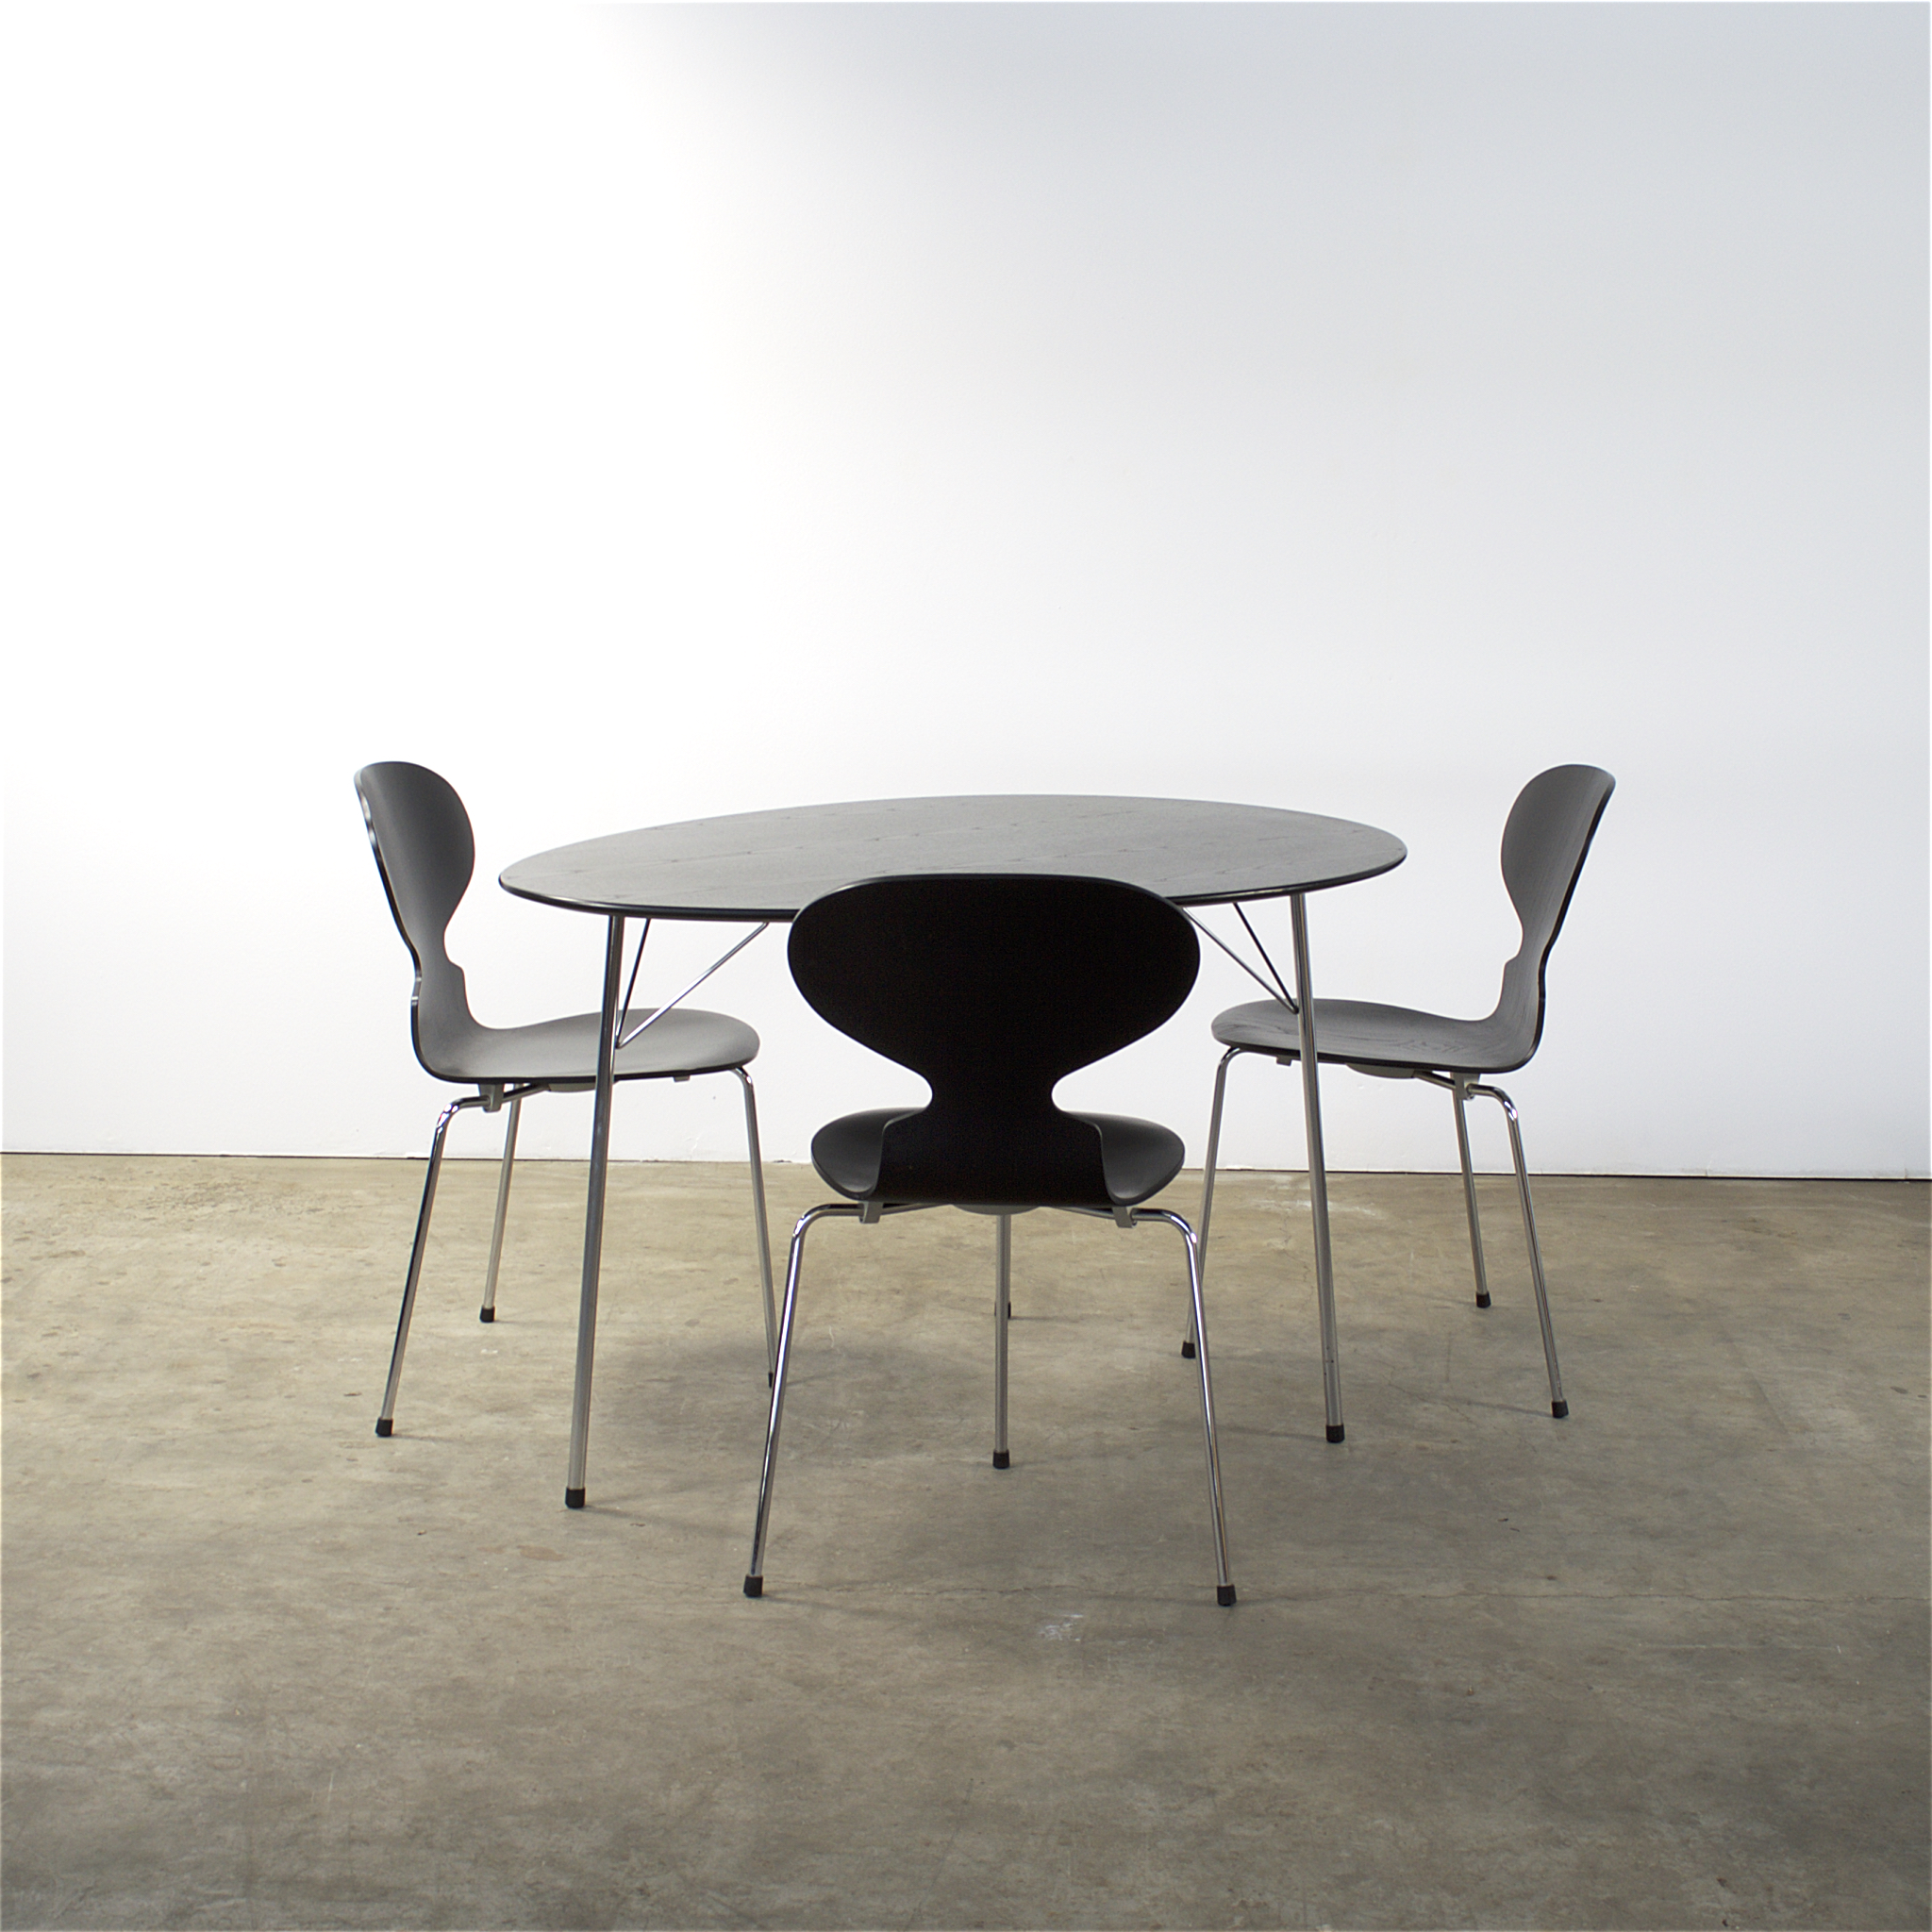 Diningset Arne Jacobsens 100 Years Centenary Package Egg Table Ant Chair Fritz Hansen Louis Poulsen